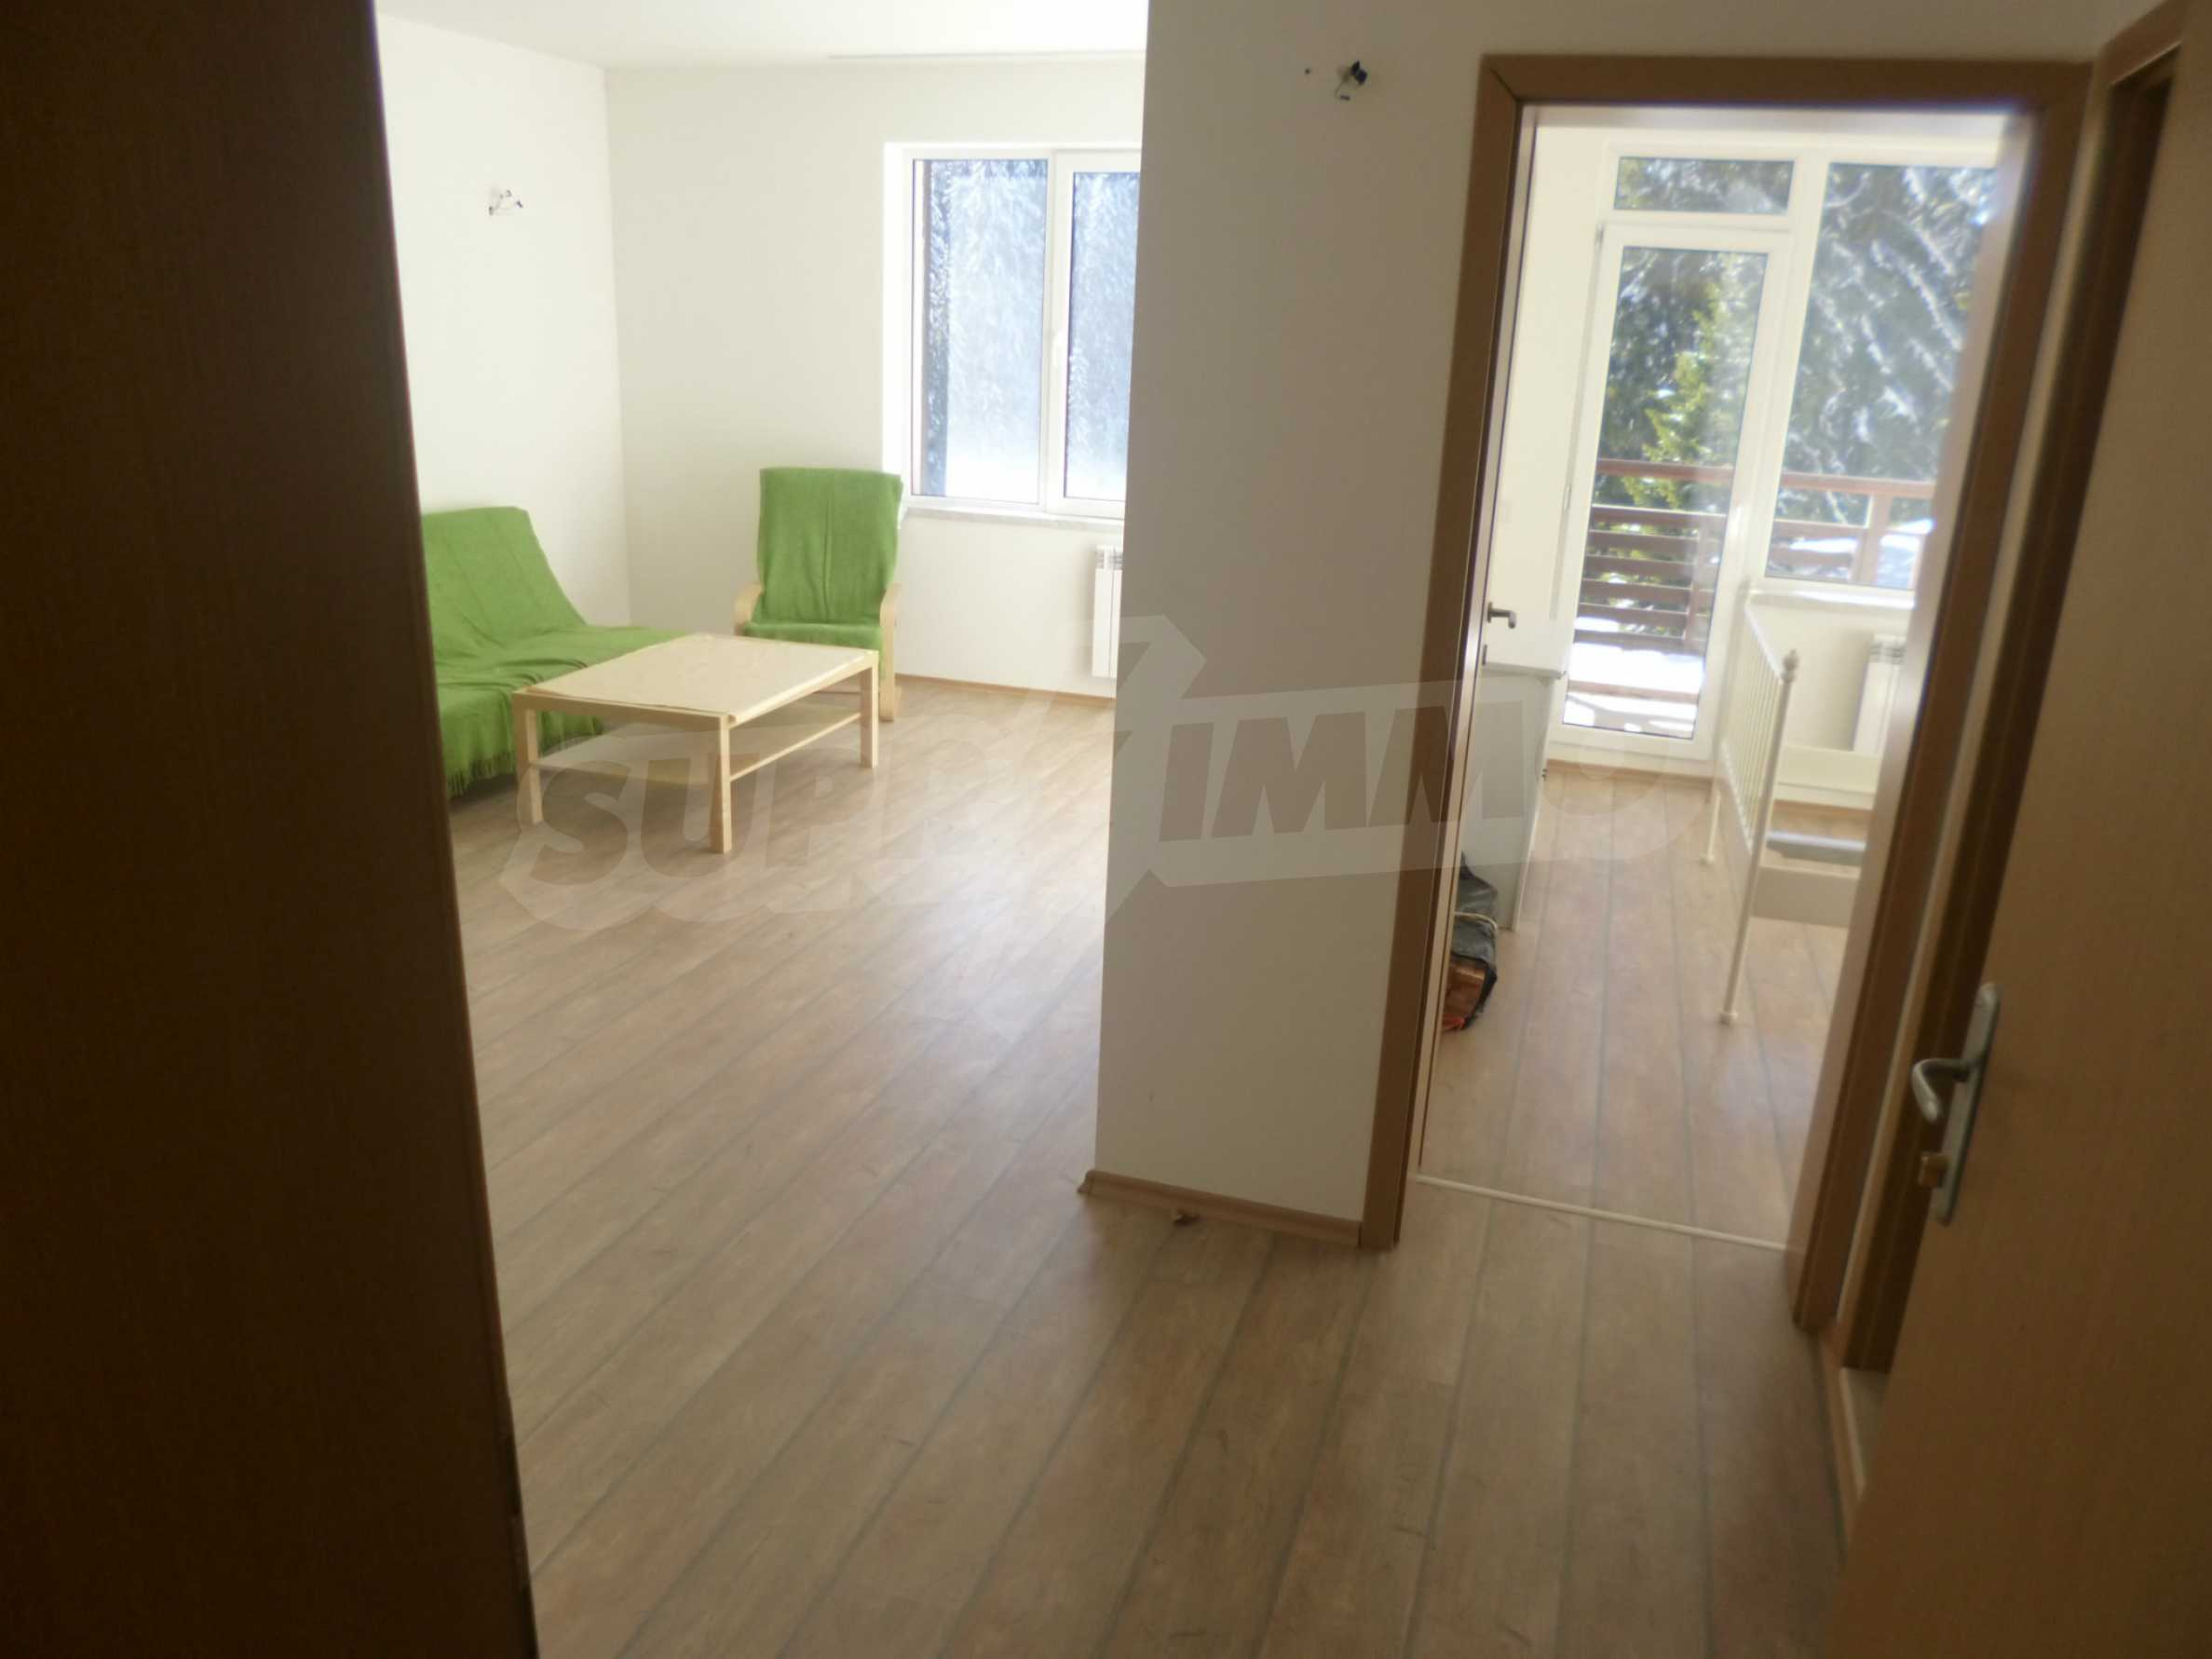 1-bedroom flat in the complex Stream Resort in Pamporovo